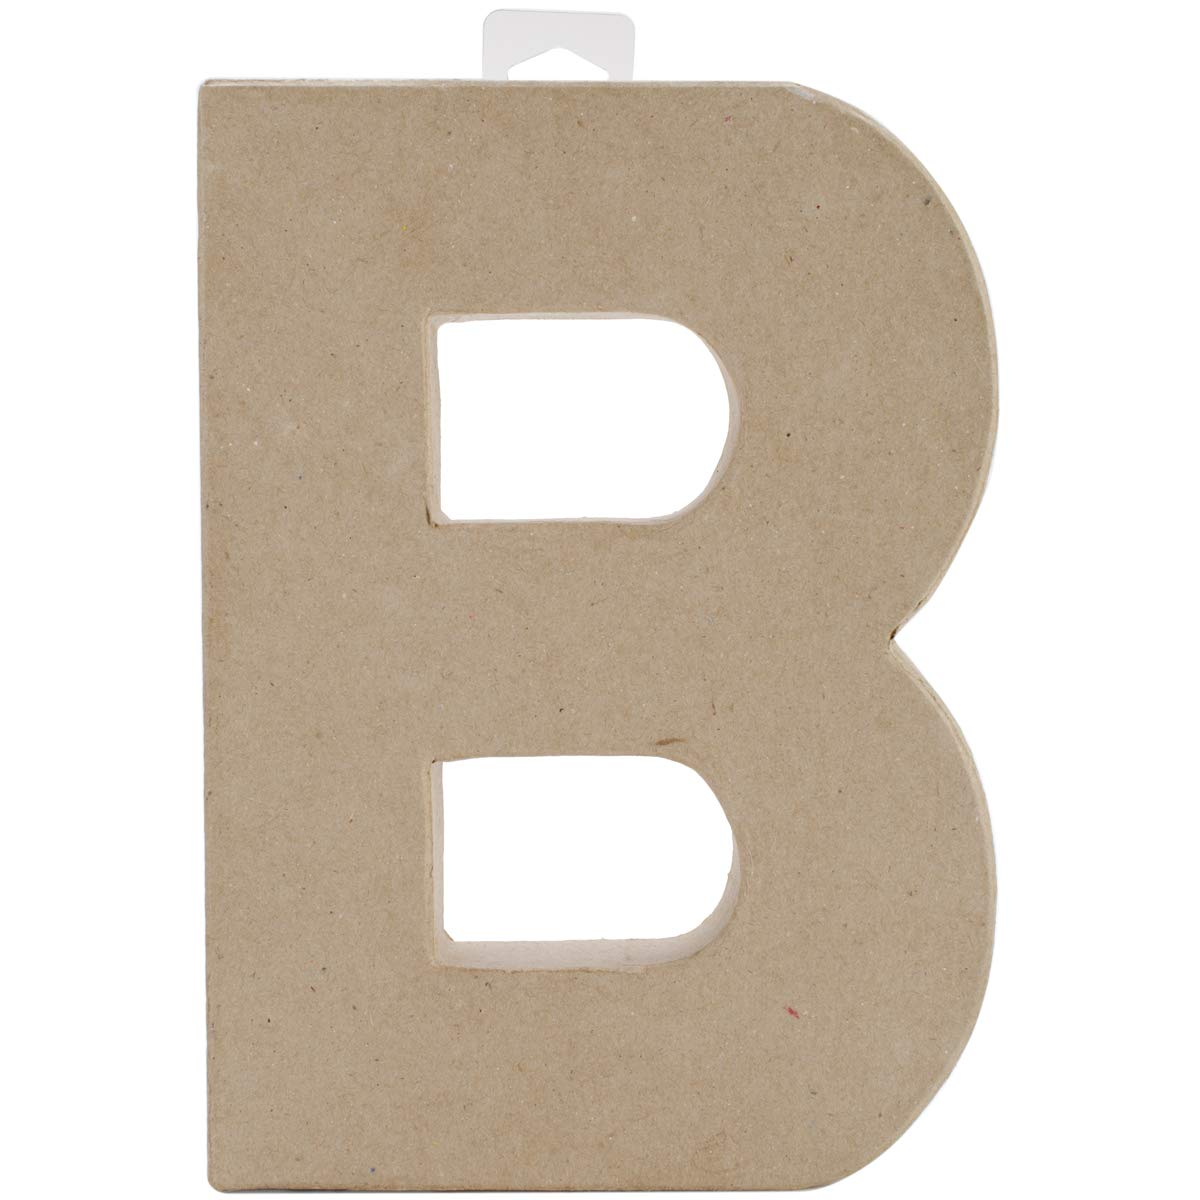 Darice Paper Mache Letter B 8 X 5.5 Inches (8 Pack)